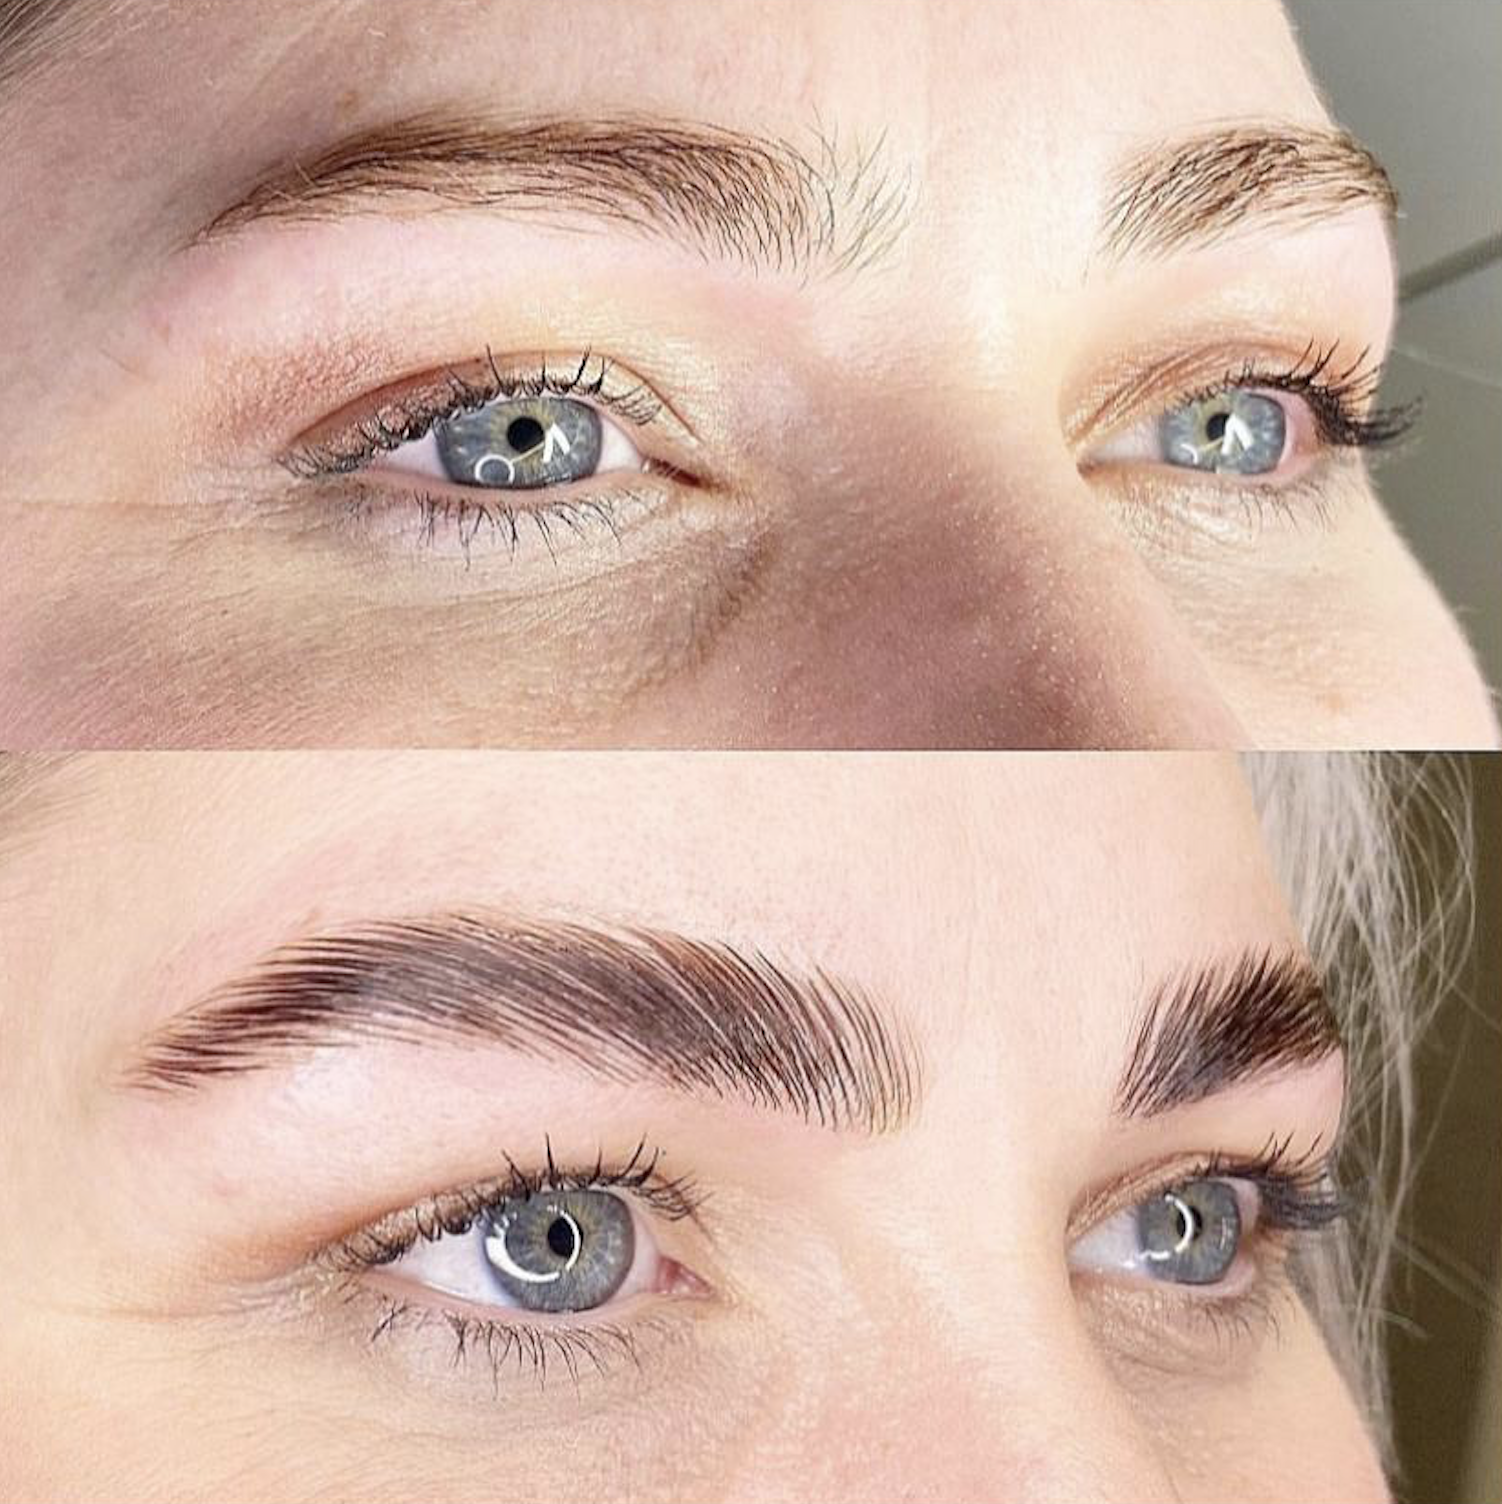 Images of before and after eyebrows done by Brau.